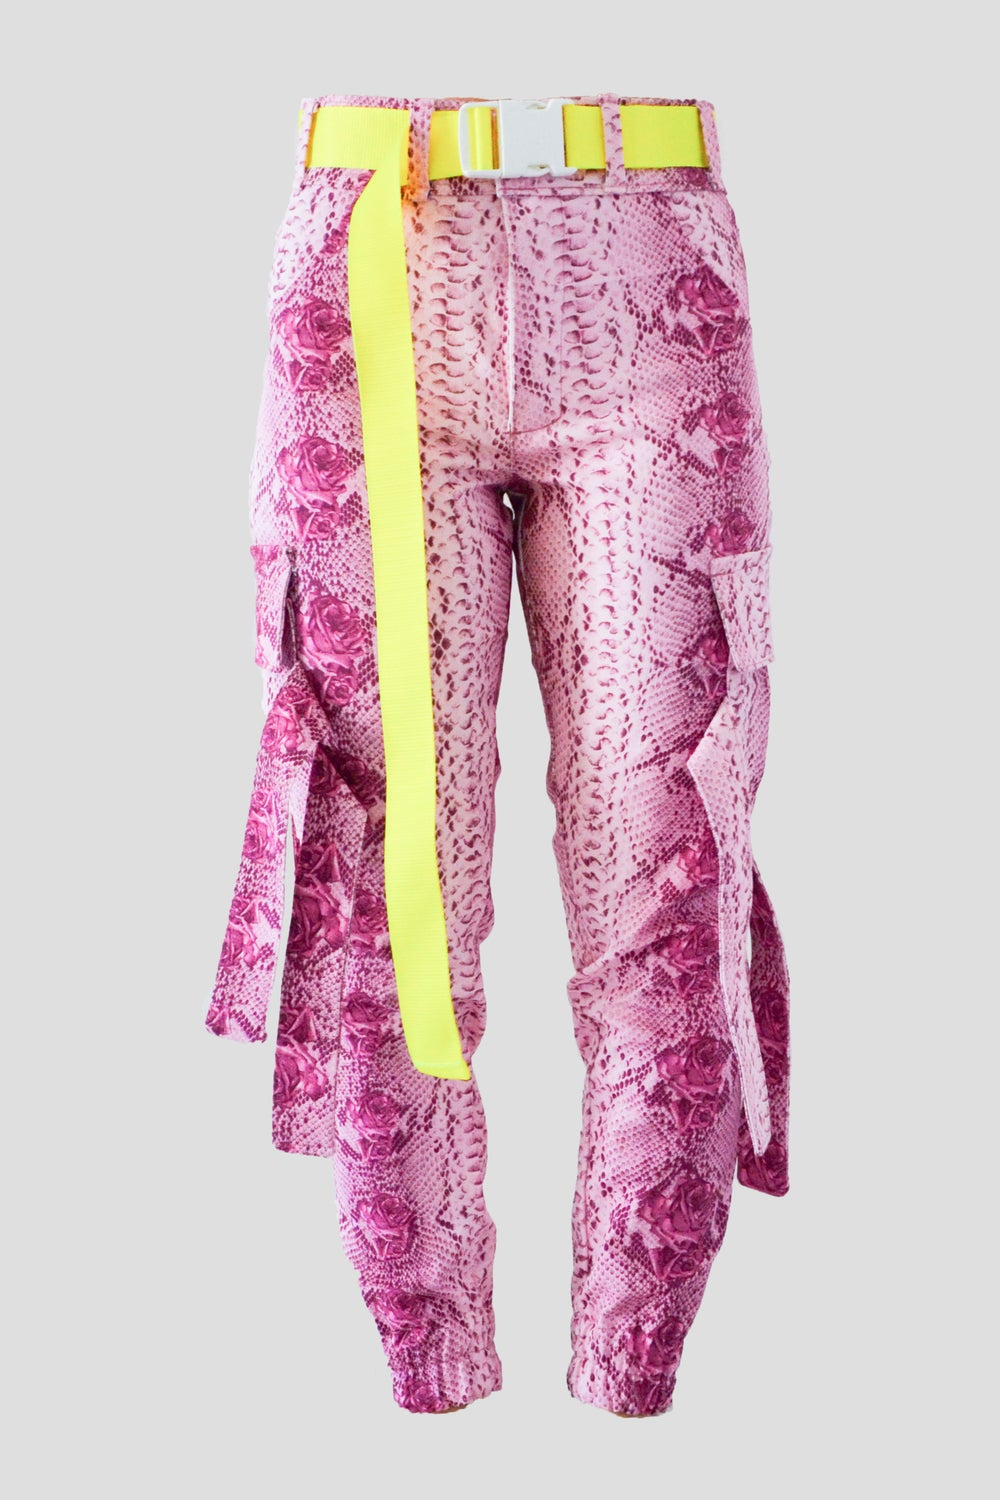 Image of Pink snake cargo pants